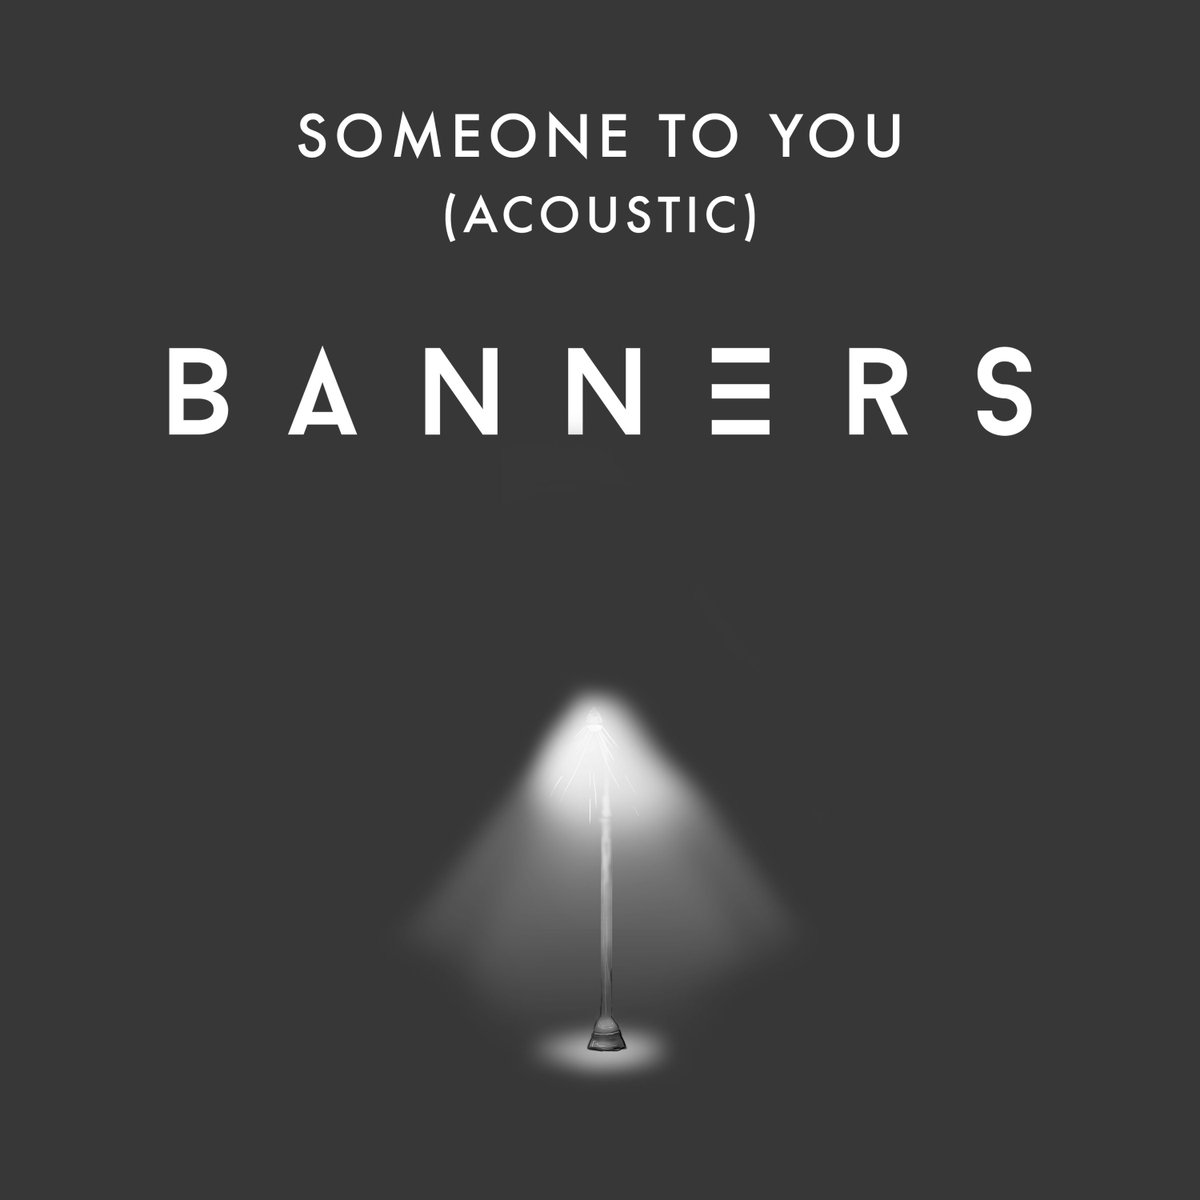 The acoustic version of #someonetoyou is out! Give it a listen: https:...